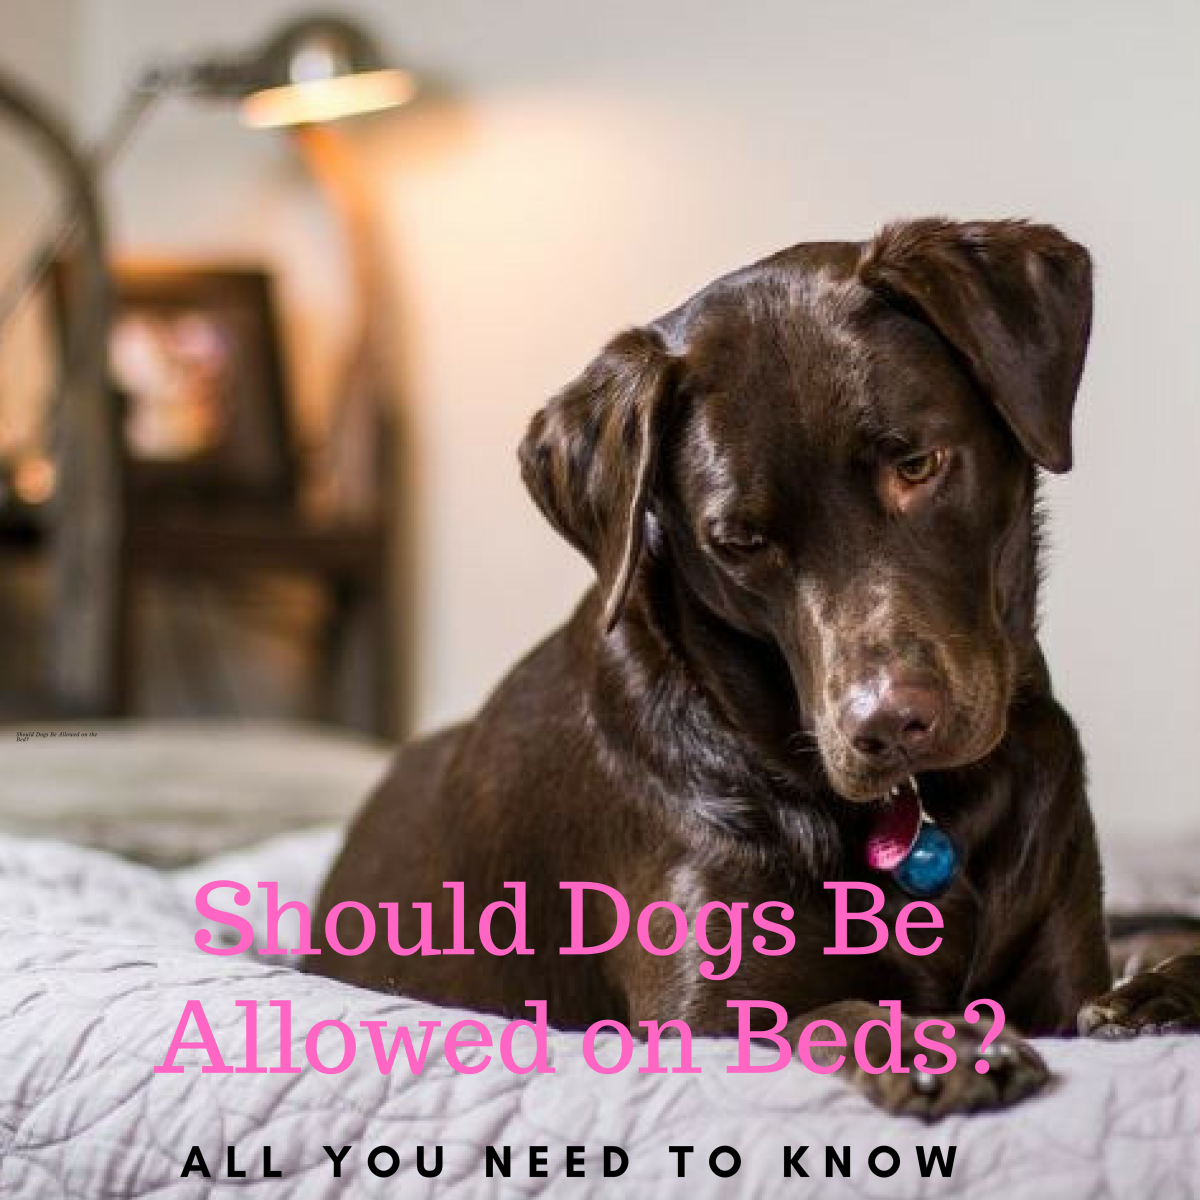 Should Dogs Be Allowed on the Bed? All You Need to Know